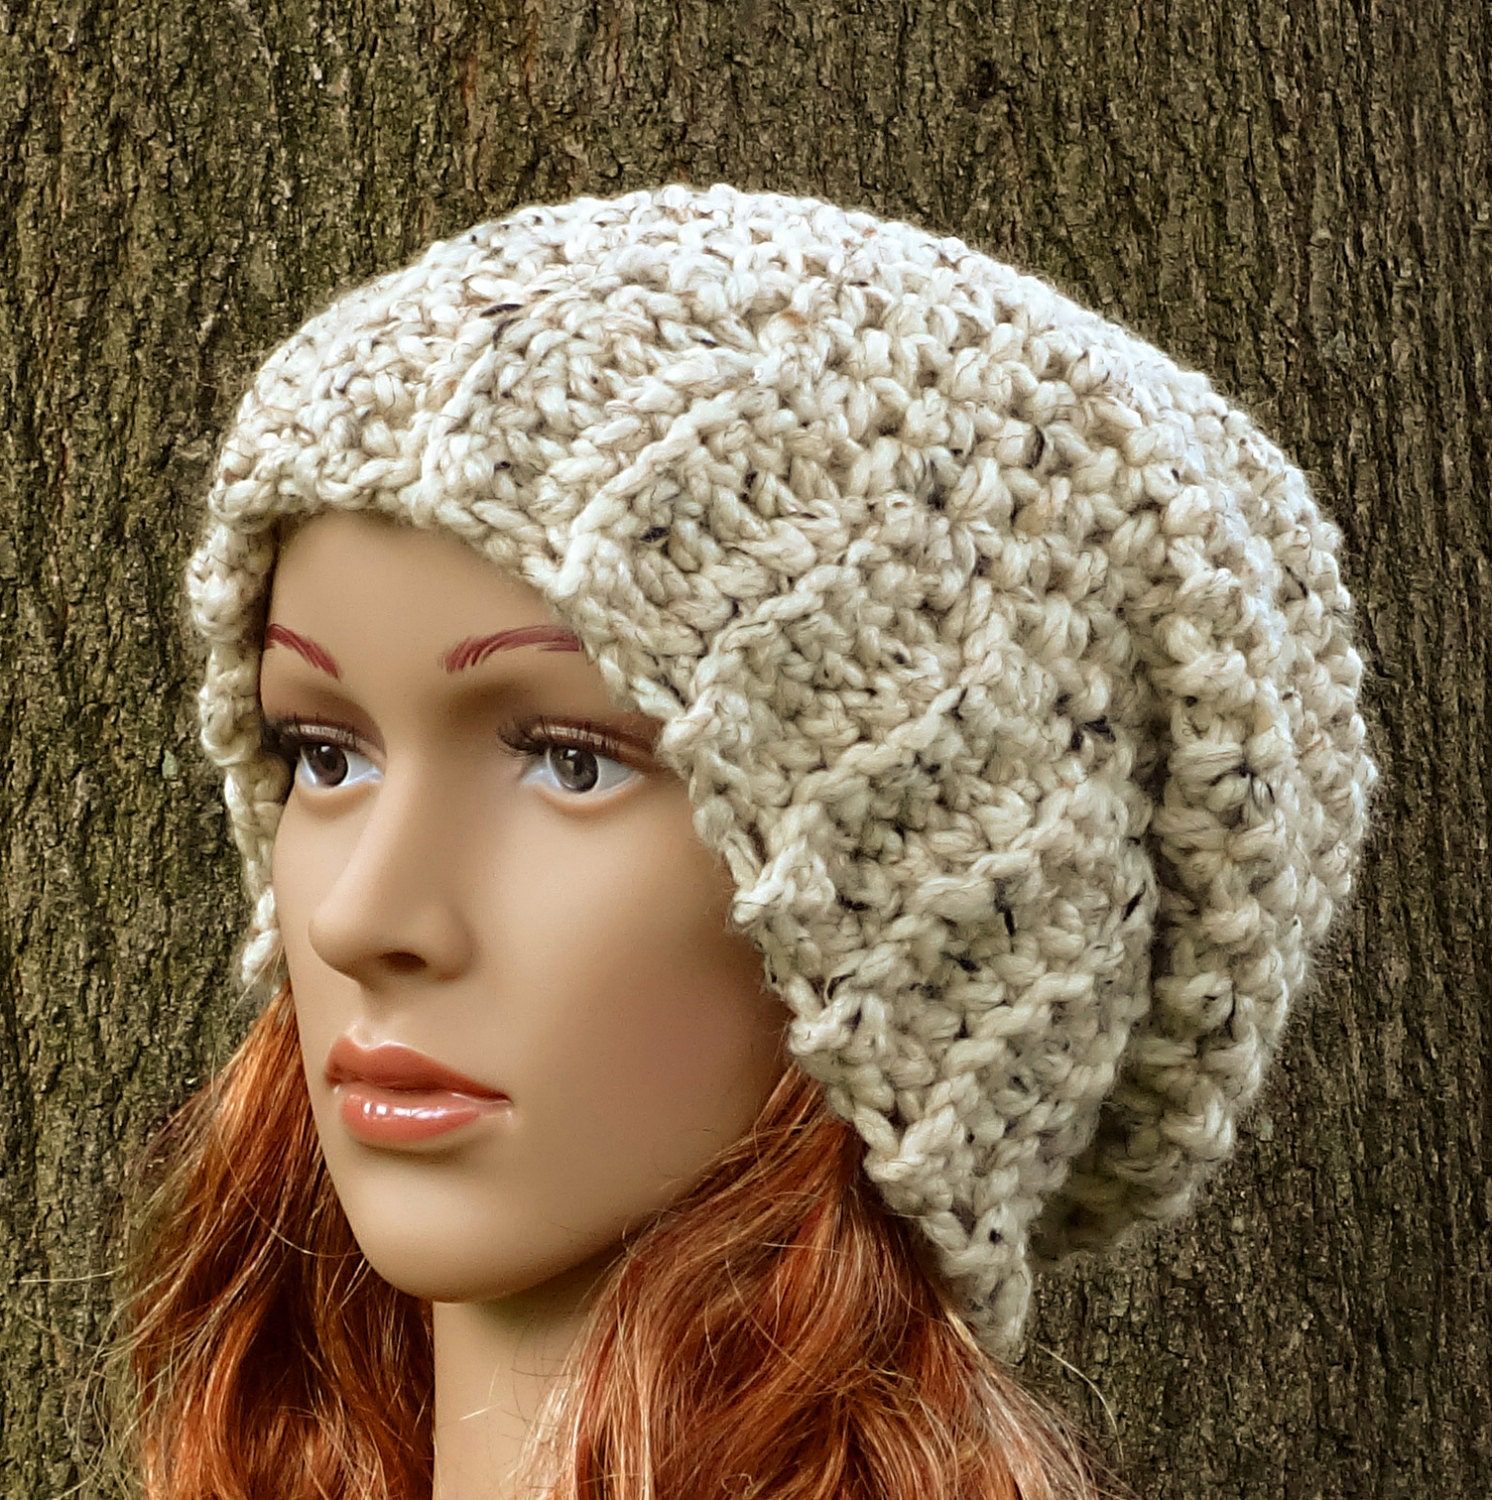 Crochet Pattern, Quick and Easy with Super Bulky Yarn, Instant Download, Wome...